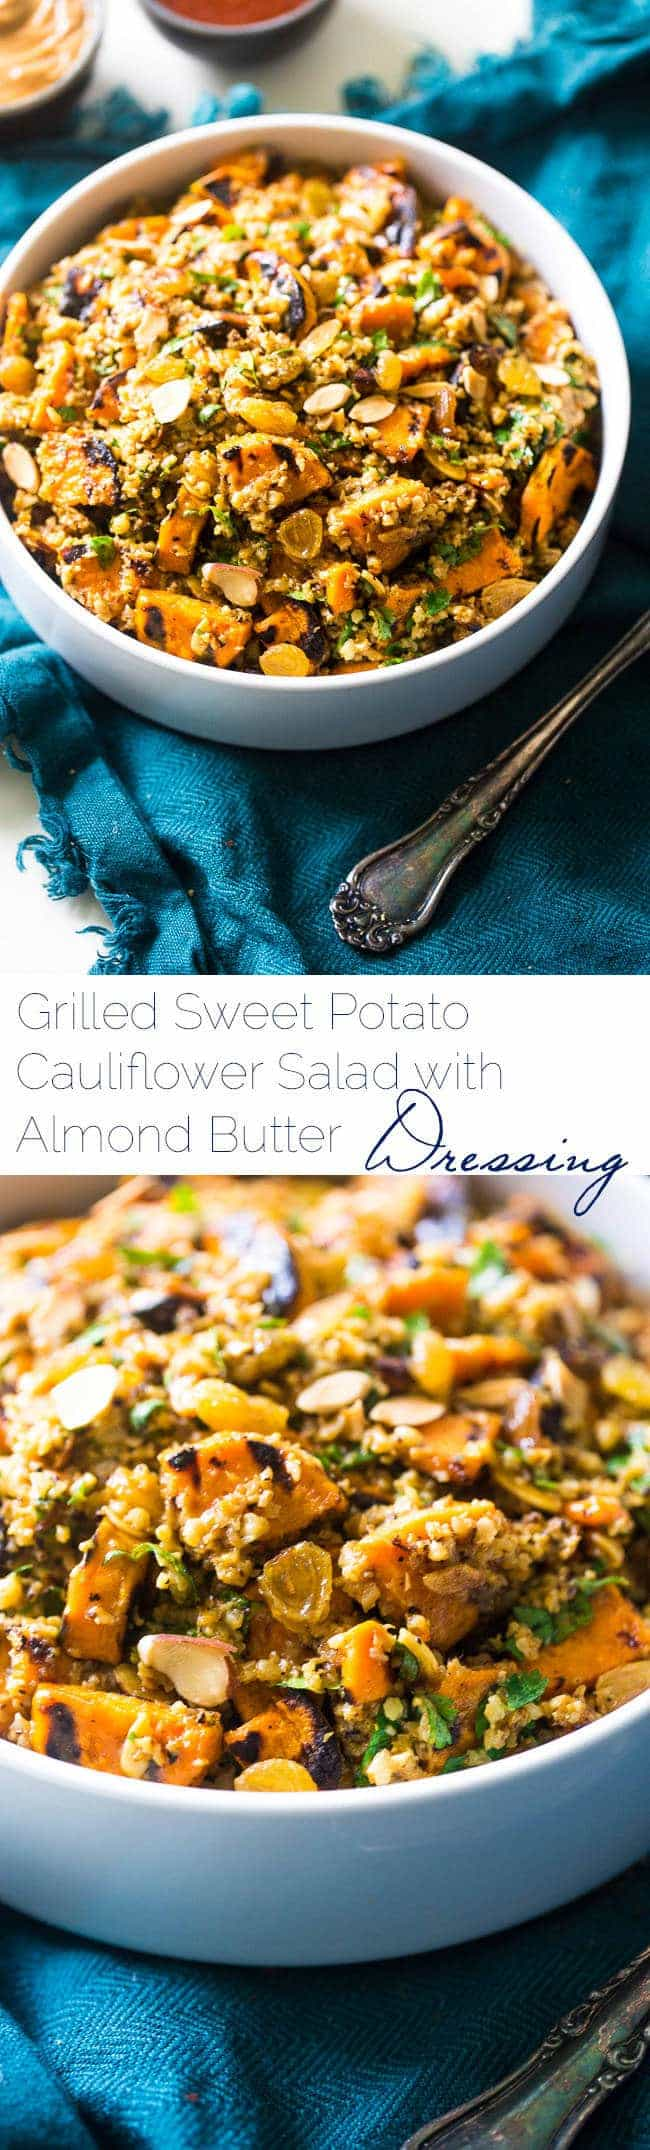 Grilled Sweet Potato Salad with Curry Almond Butter Vinaigrette - Grilled sweet potatoes, cauliflower rice and creamy almond butter make this a healthy, Paleo, whole & Vegan-friendly side dish for the Summer! | #Foodfaithfitness | #paleo #vegan #whole30 #healthy #potatosalad